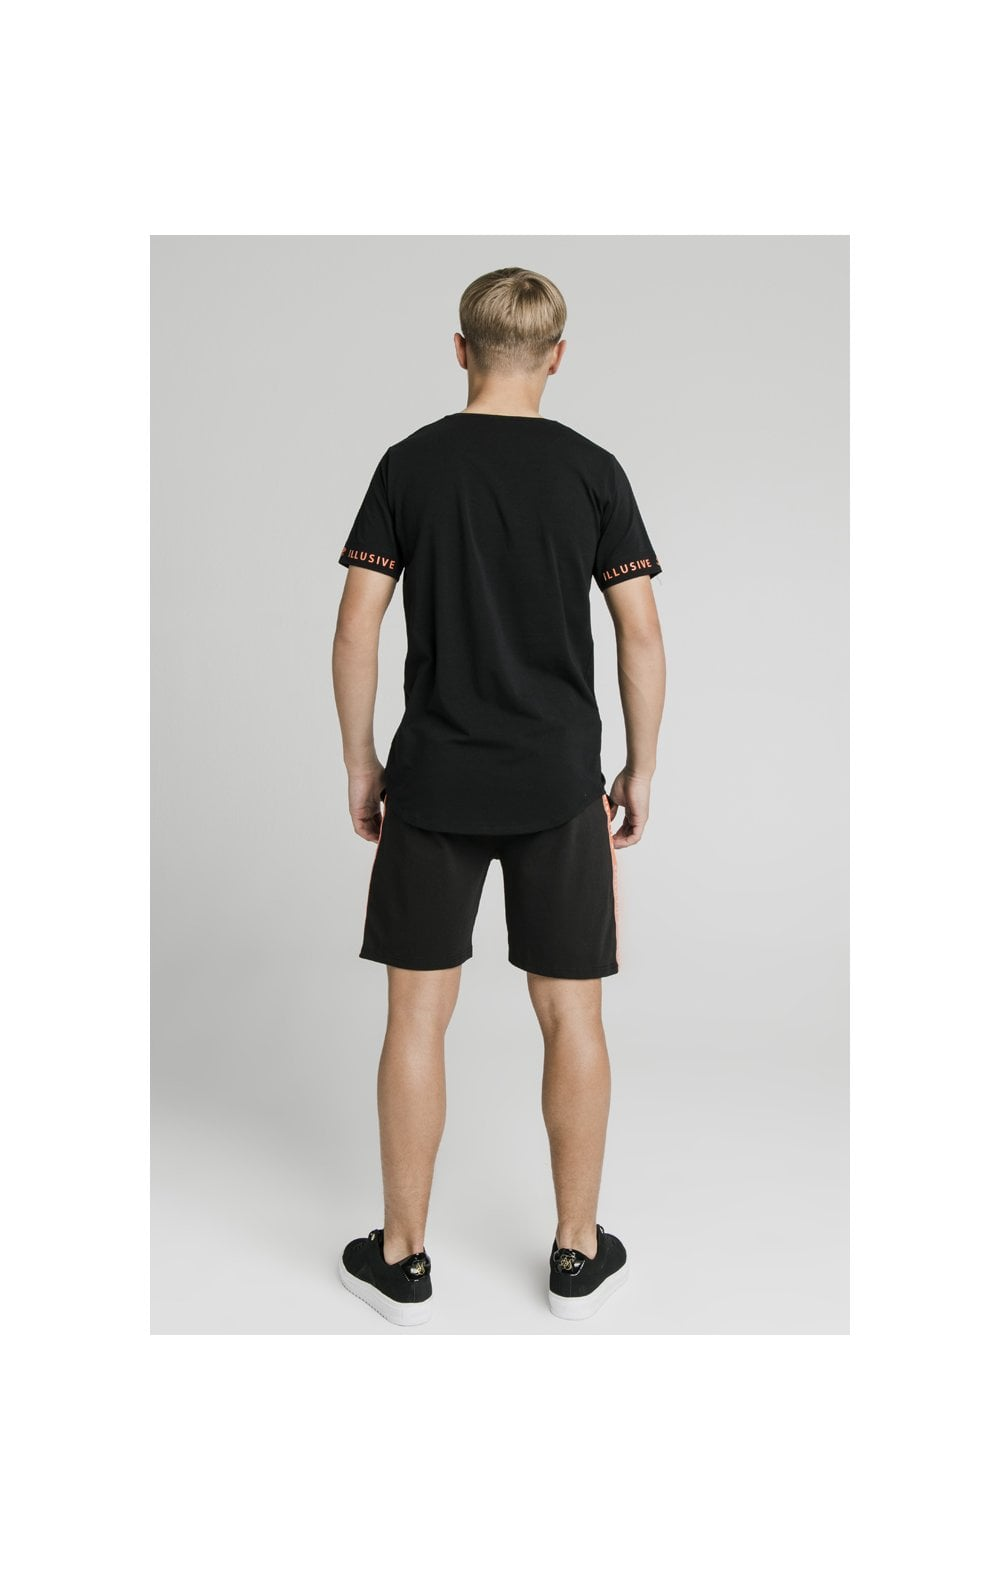 Illusive London Tape Tee - Black (6)